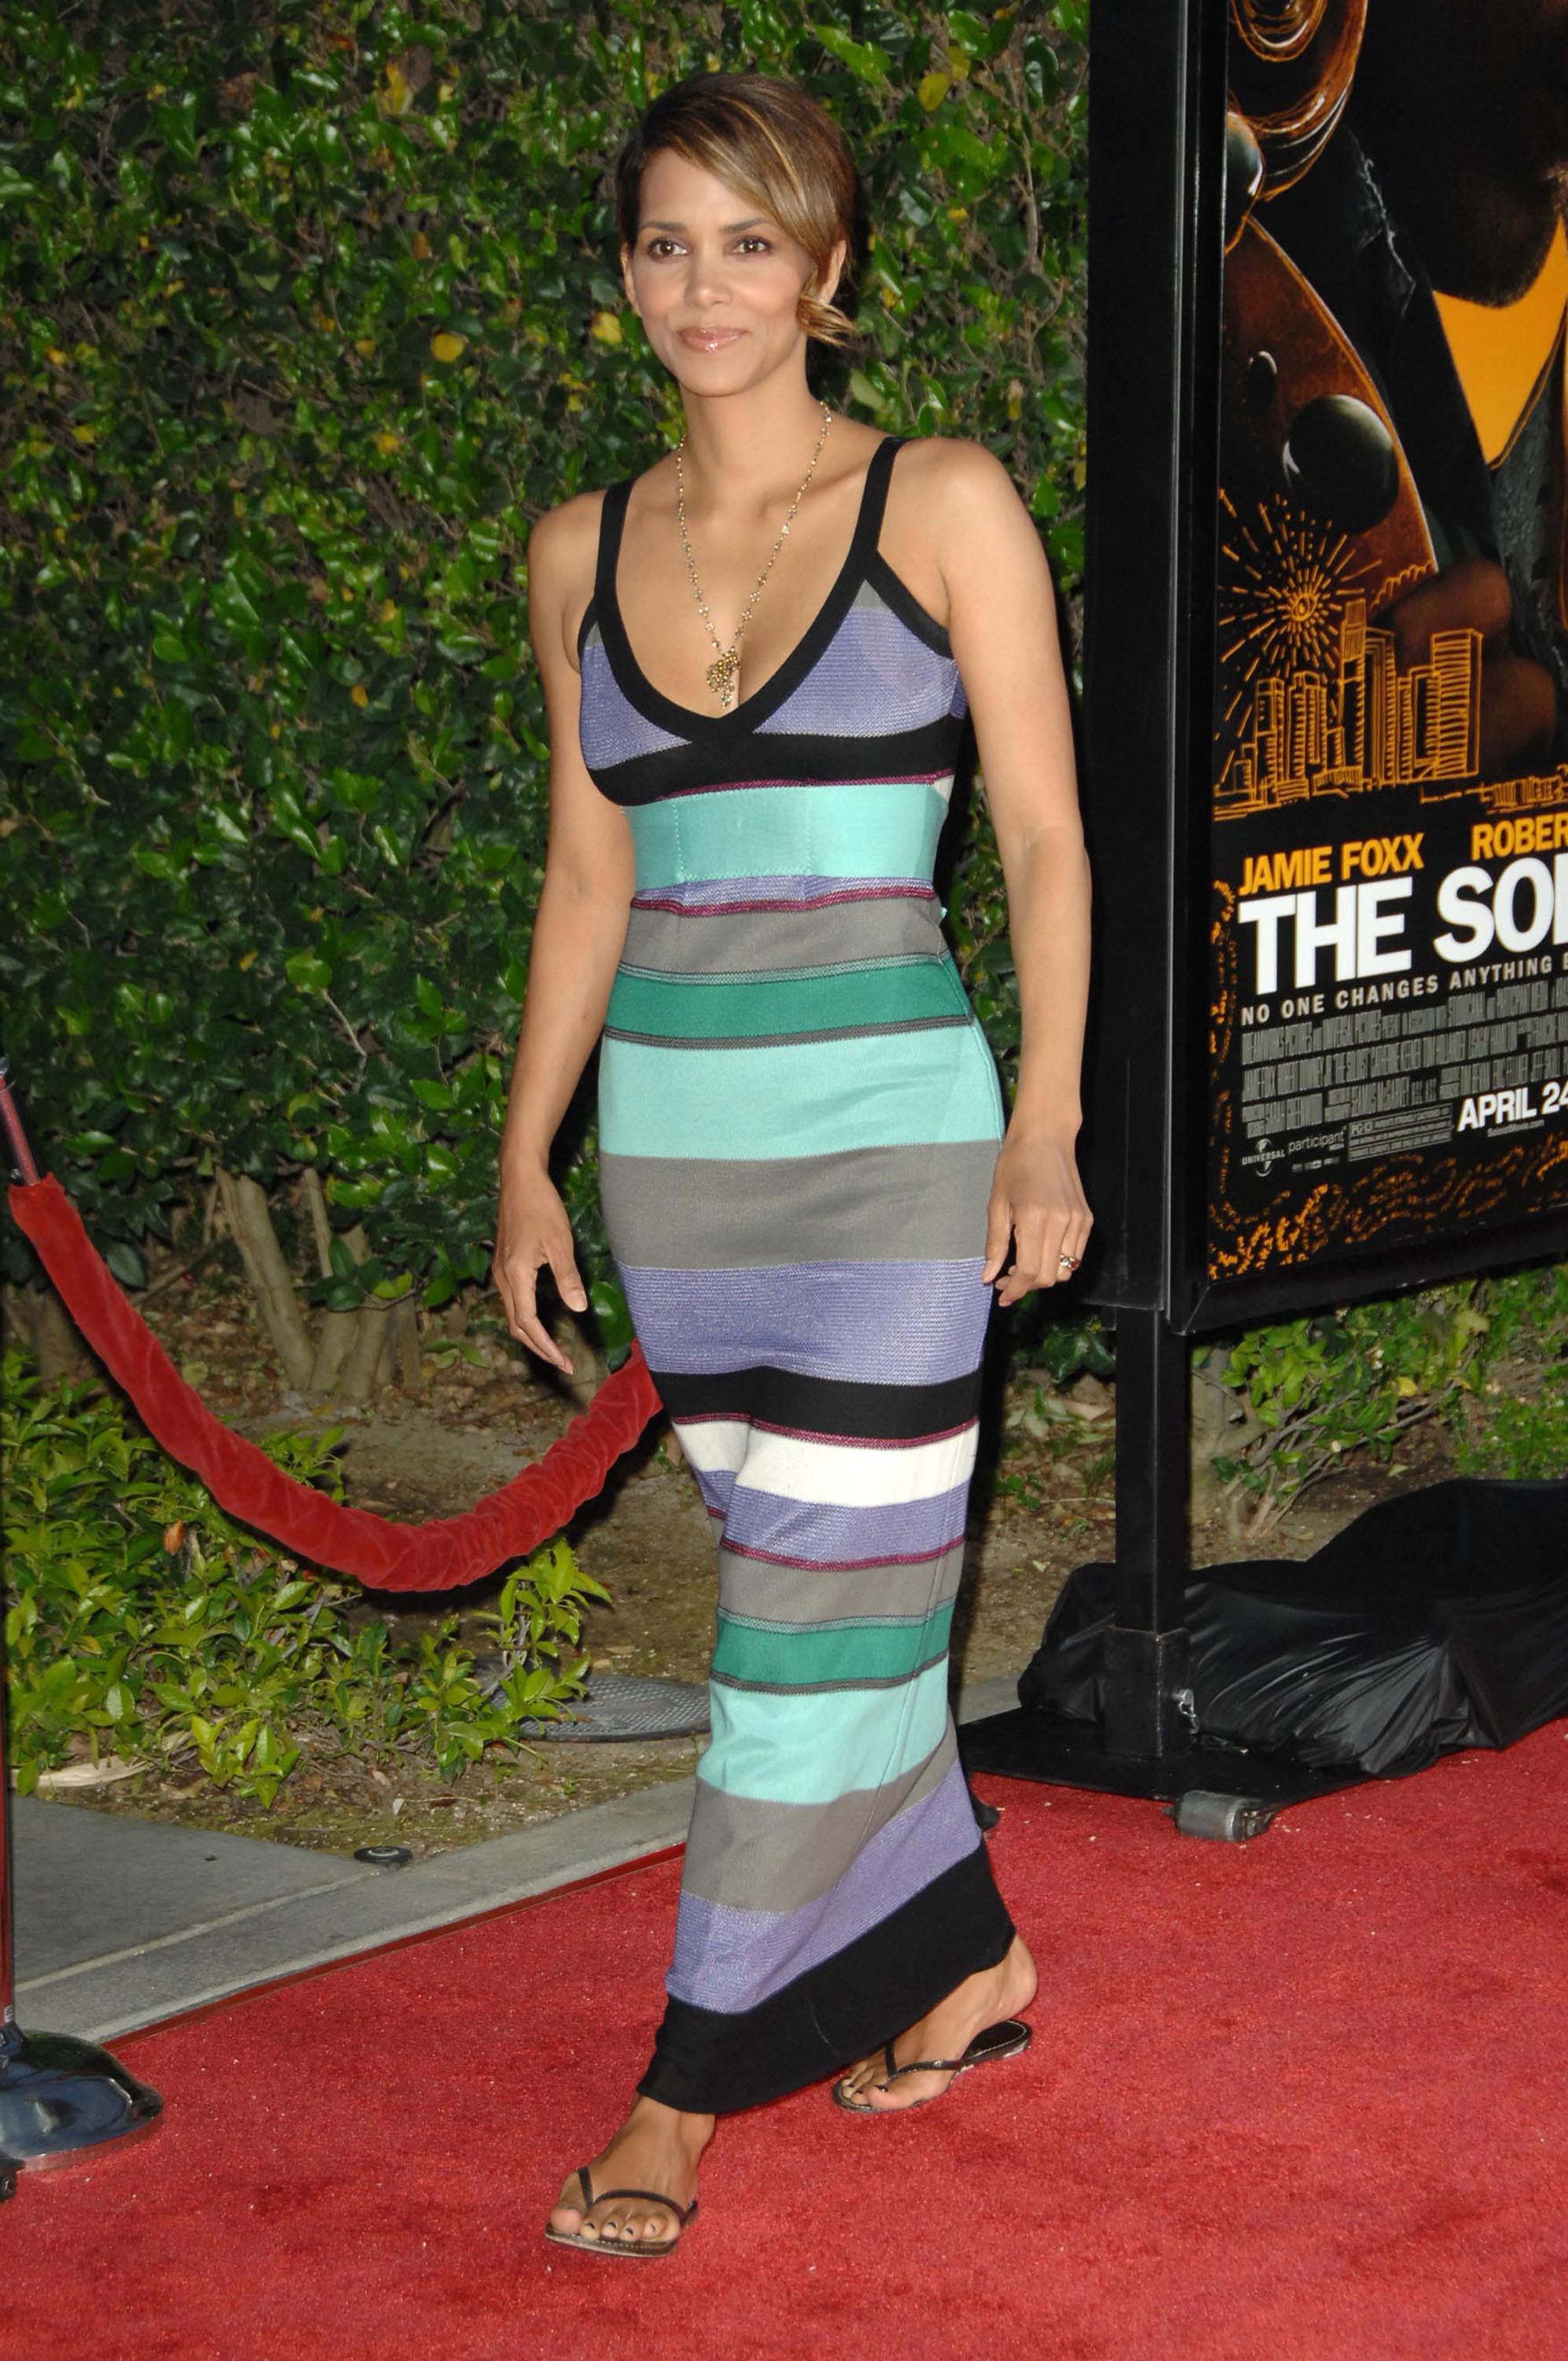 65671_Halle_Berry_The_Soloist_premiere_in_Los_Angeles_69_122_1074lo.jpg